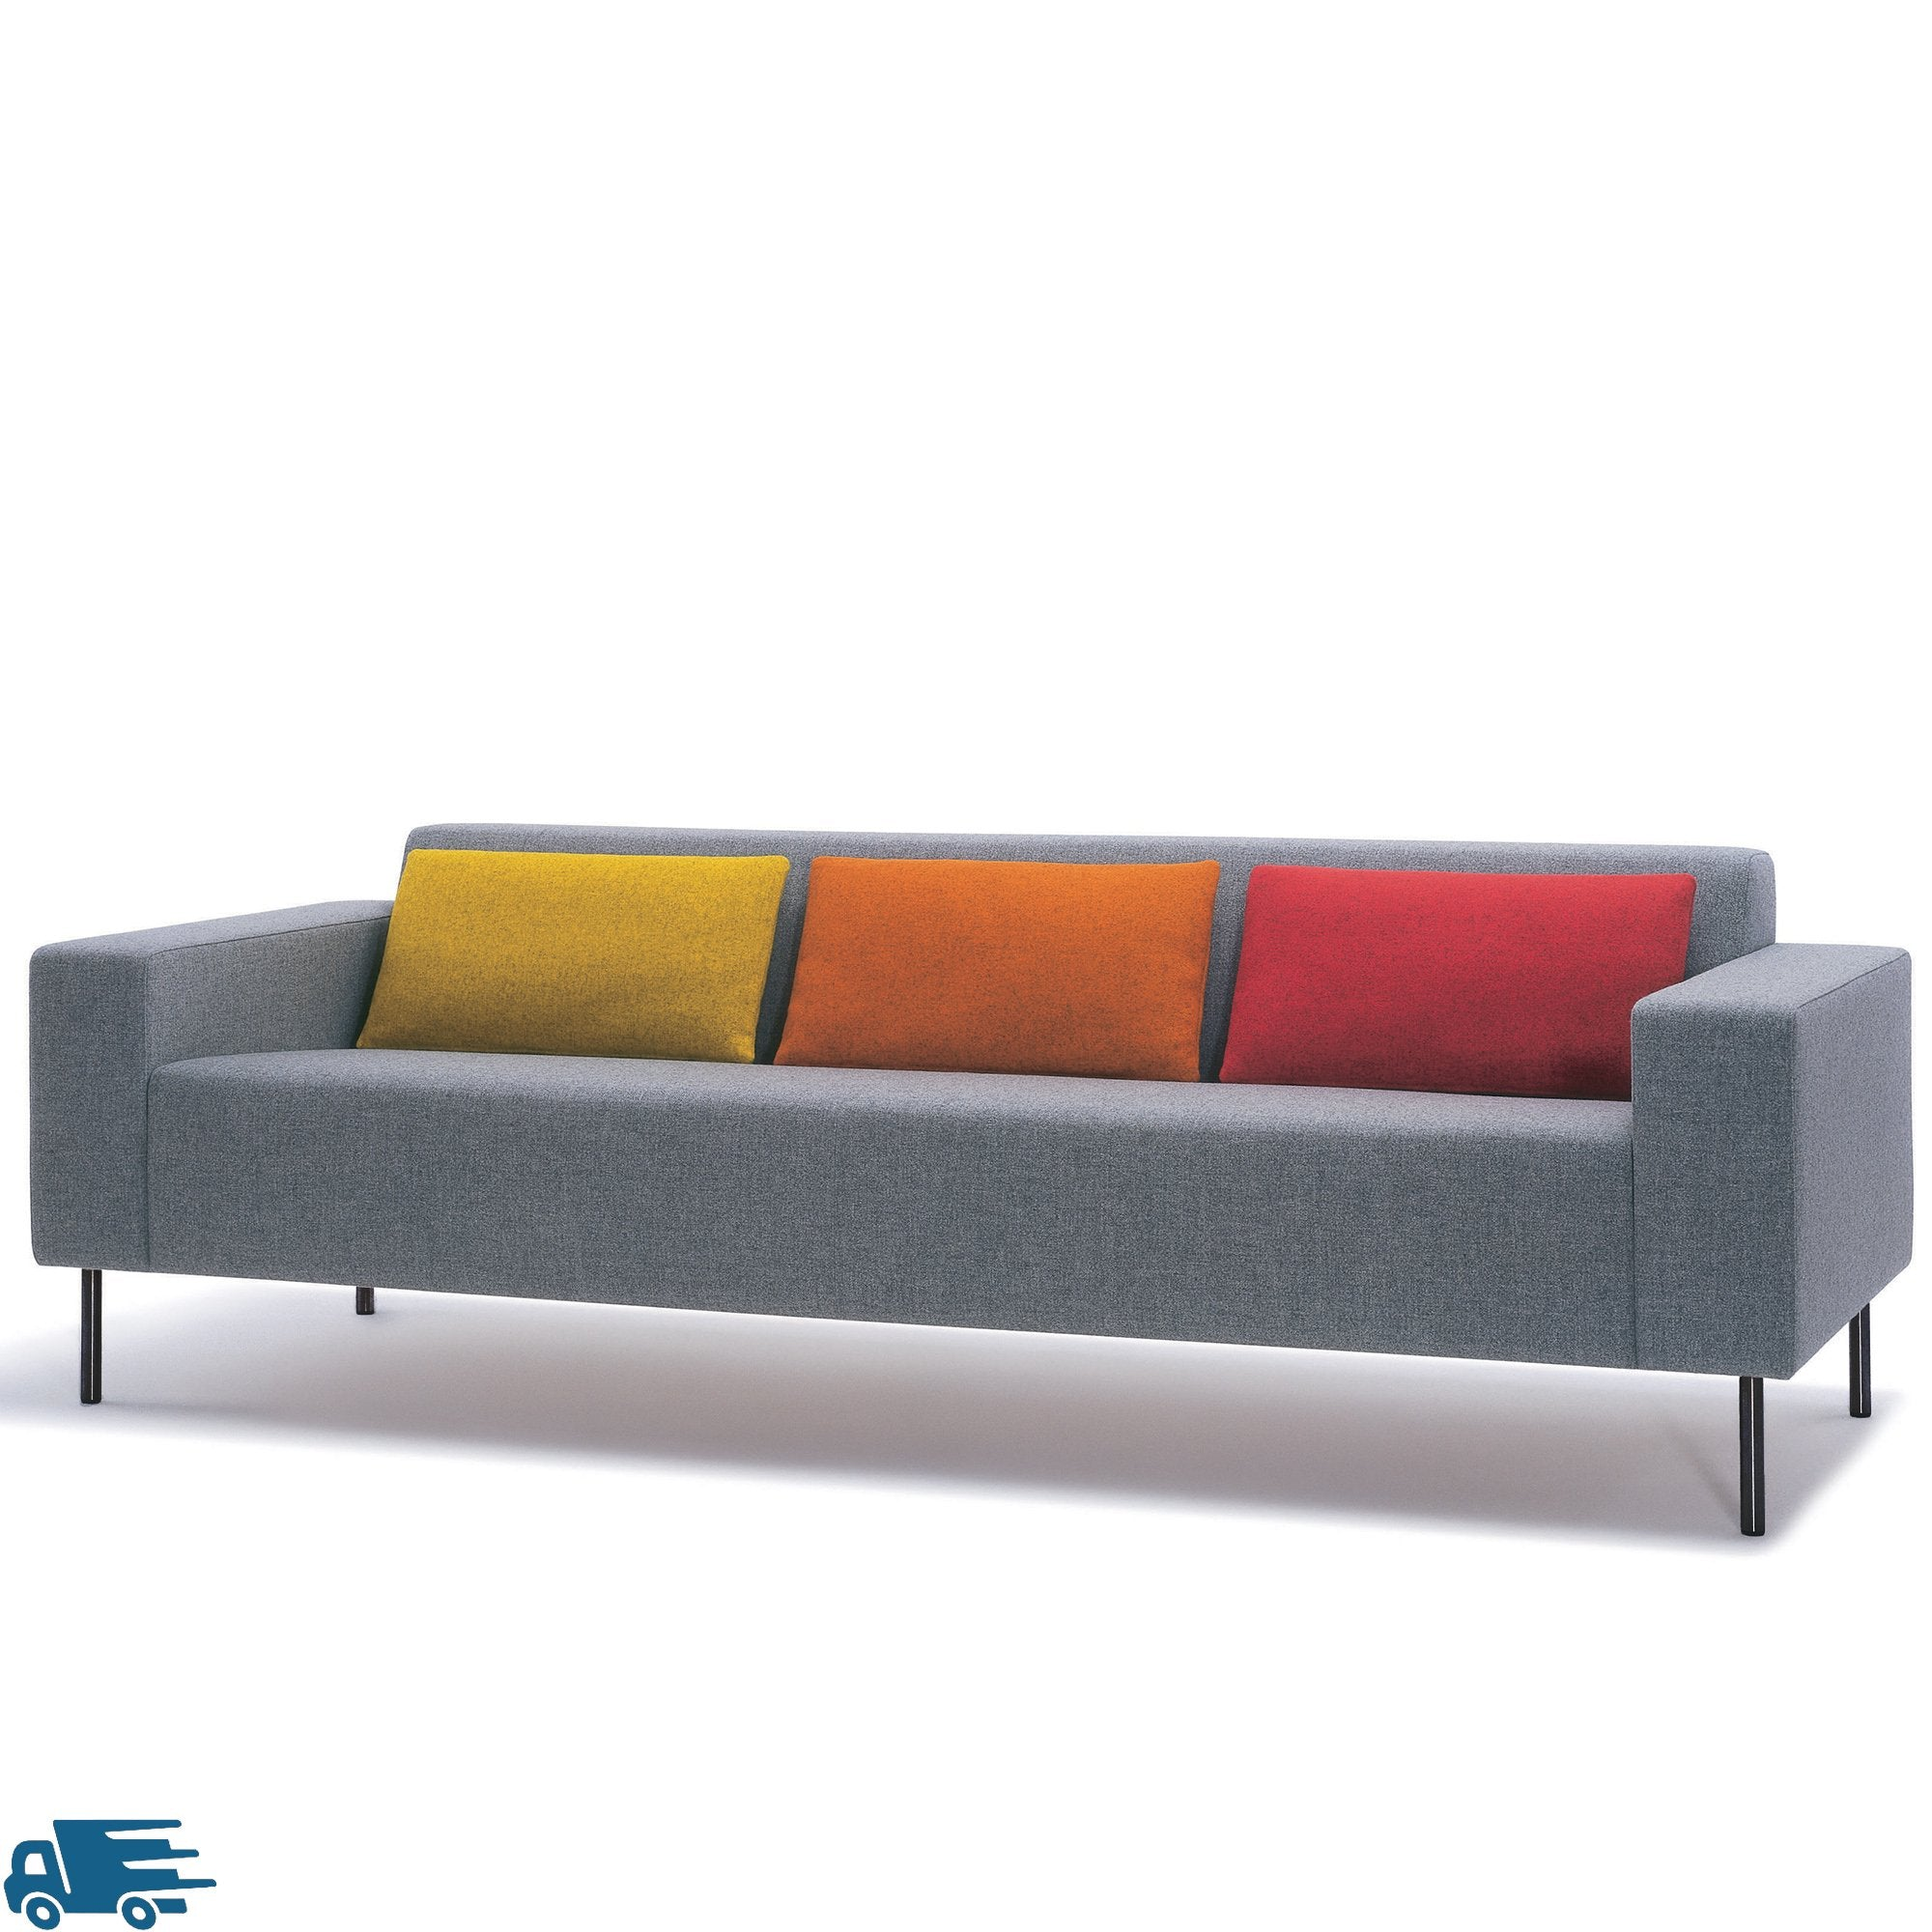 Hitch Mylius HM18 Origin Three Seat Sofa Black Legs